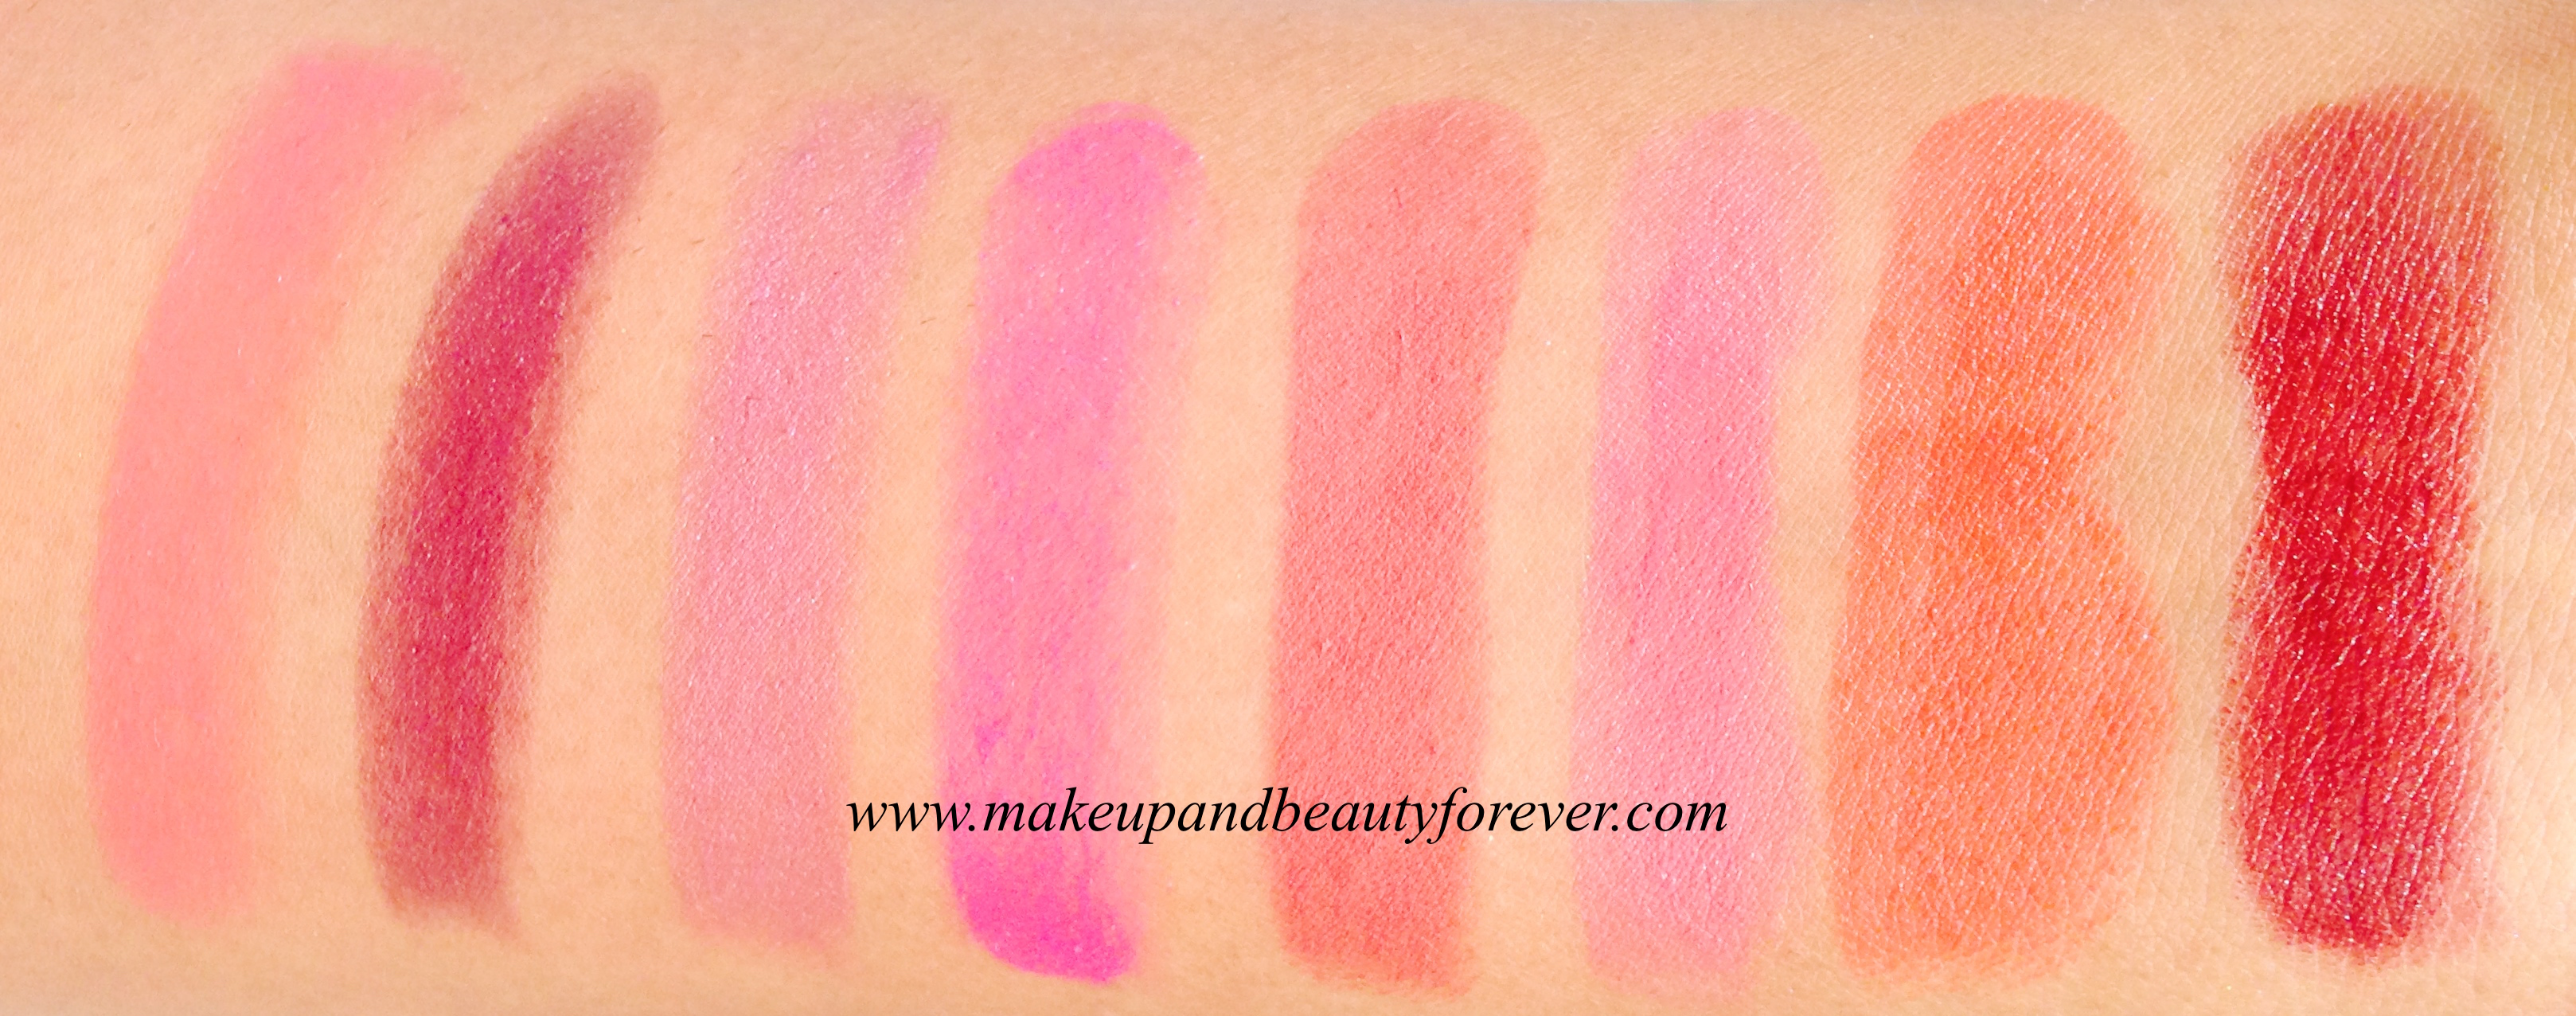 Revlon Super Lustrous Lipstick Review Shades Swatches